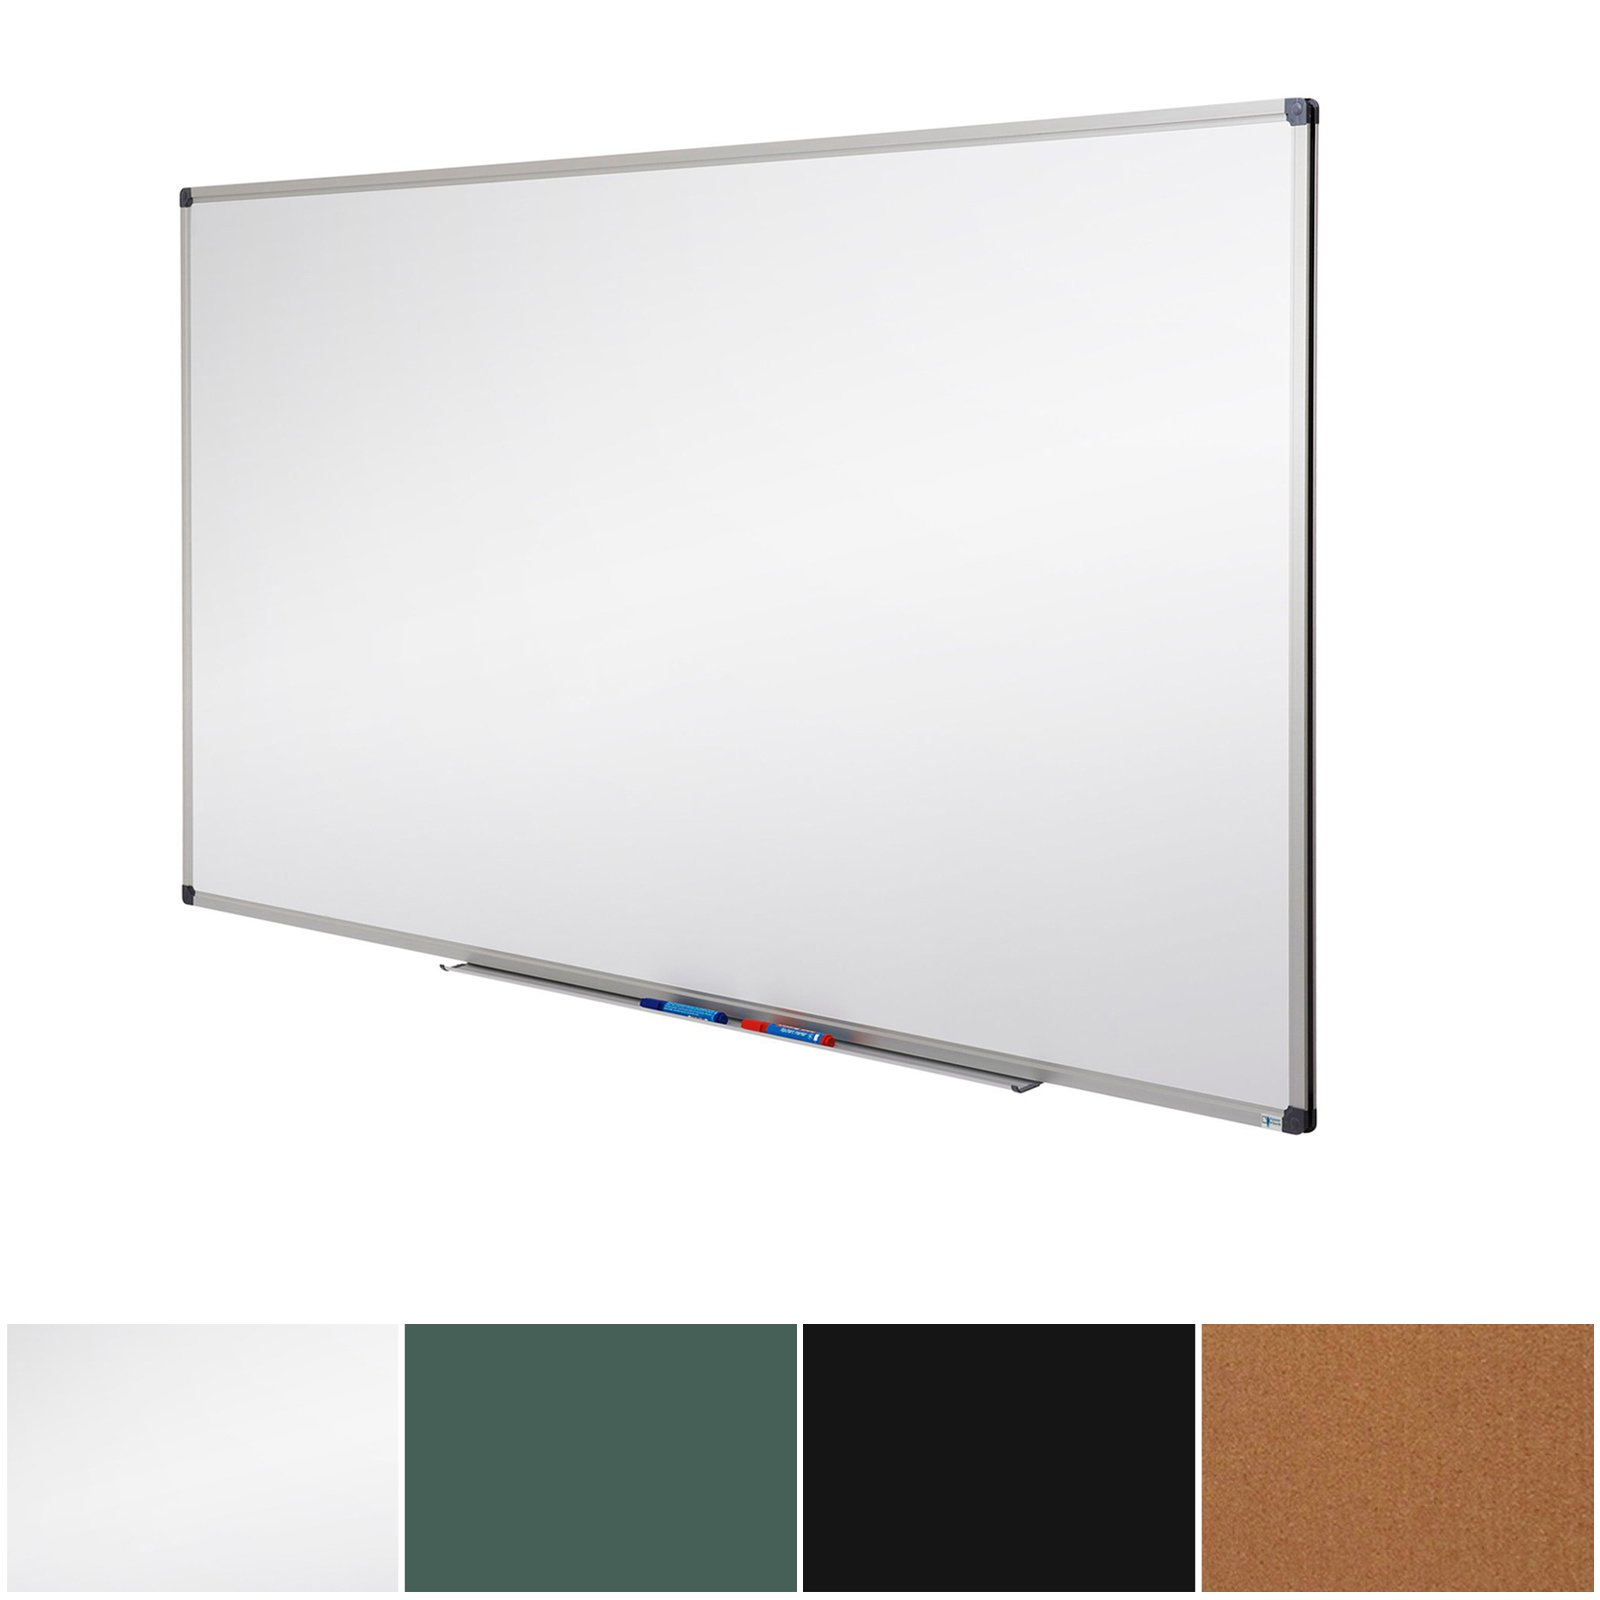 Master of Boards White Board | Magnet Dry Erase Board | Magnetic Message and Memo Planner for Commercial or Private Use | 4 Sizes | 36'' x 24'' by Master of Boards (Image #6)